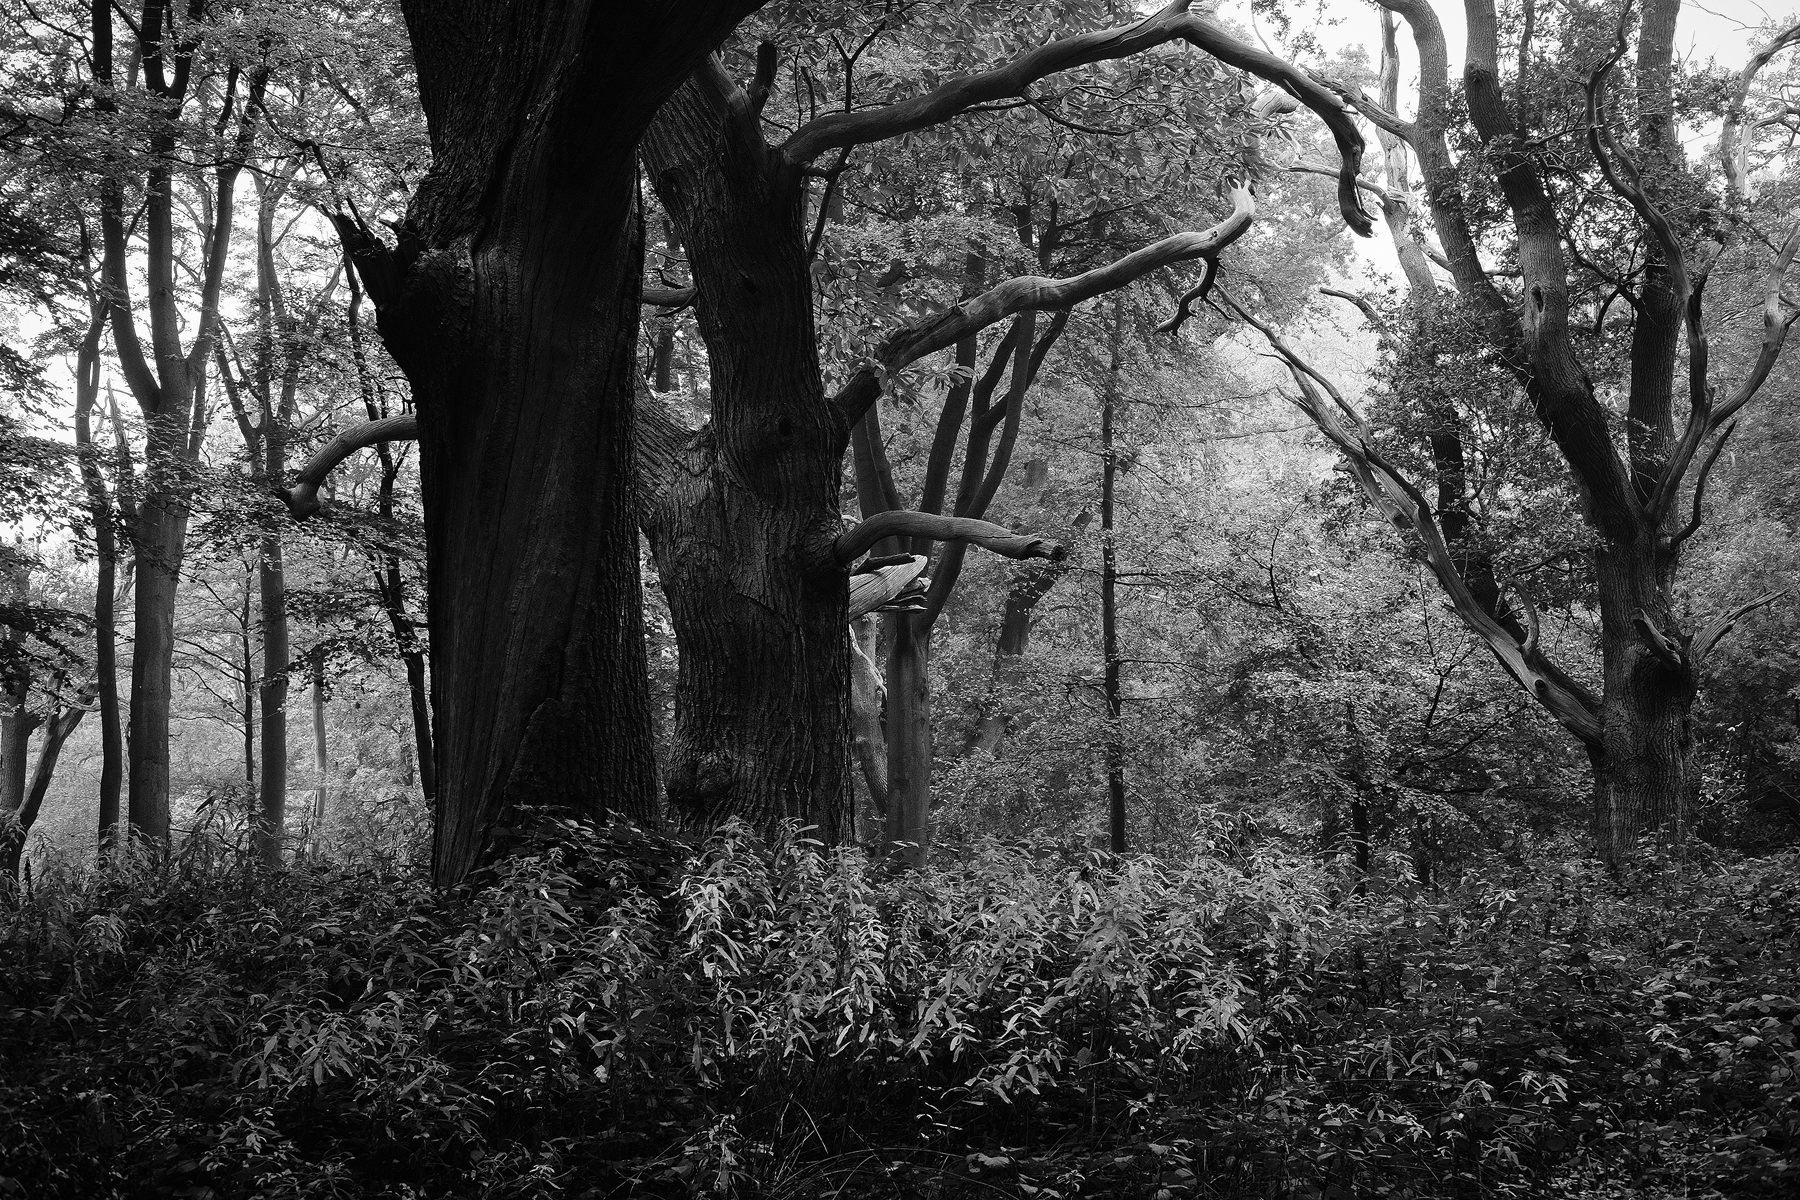 Mono Woodland scenes with Fuji X-Pro1